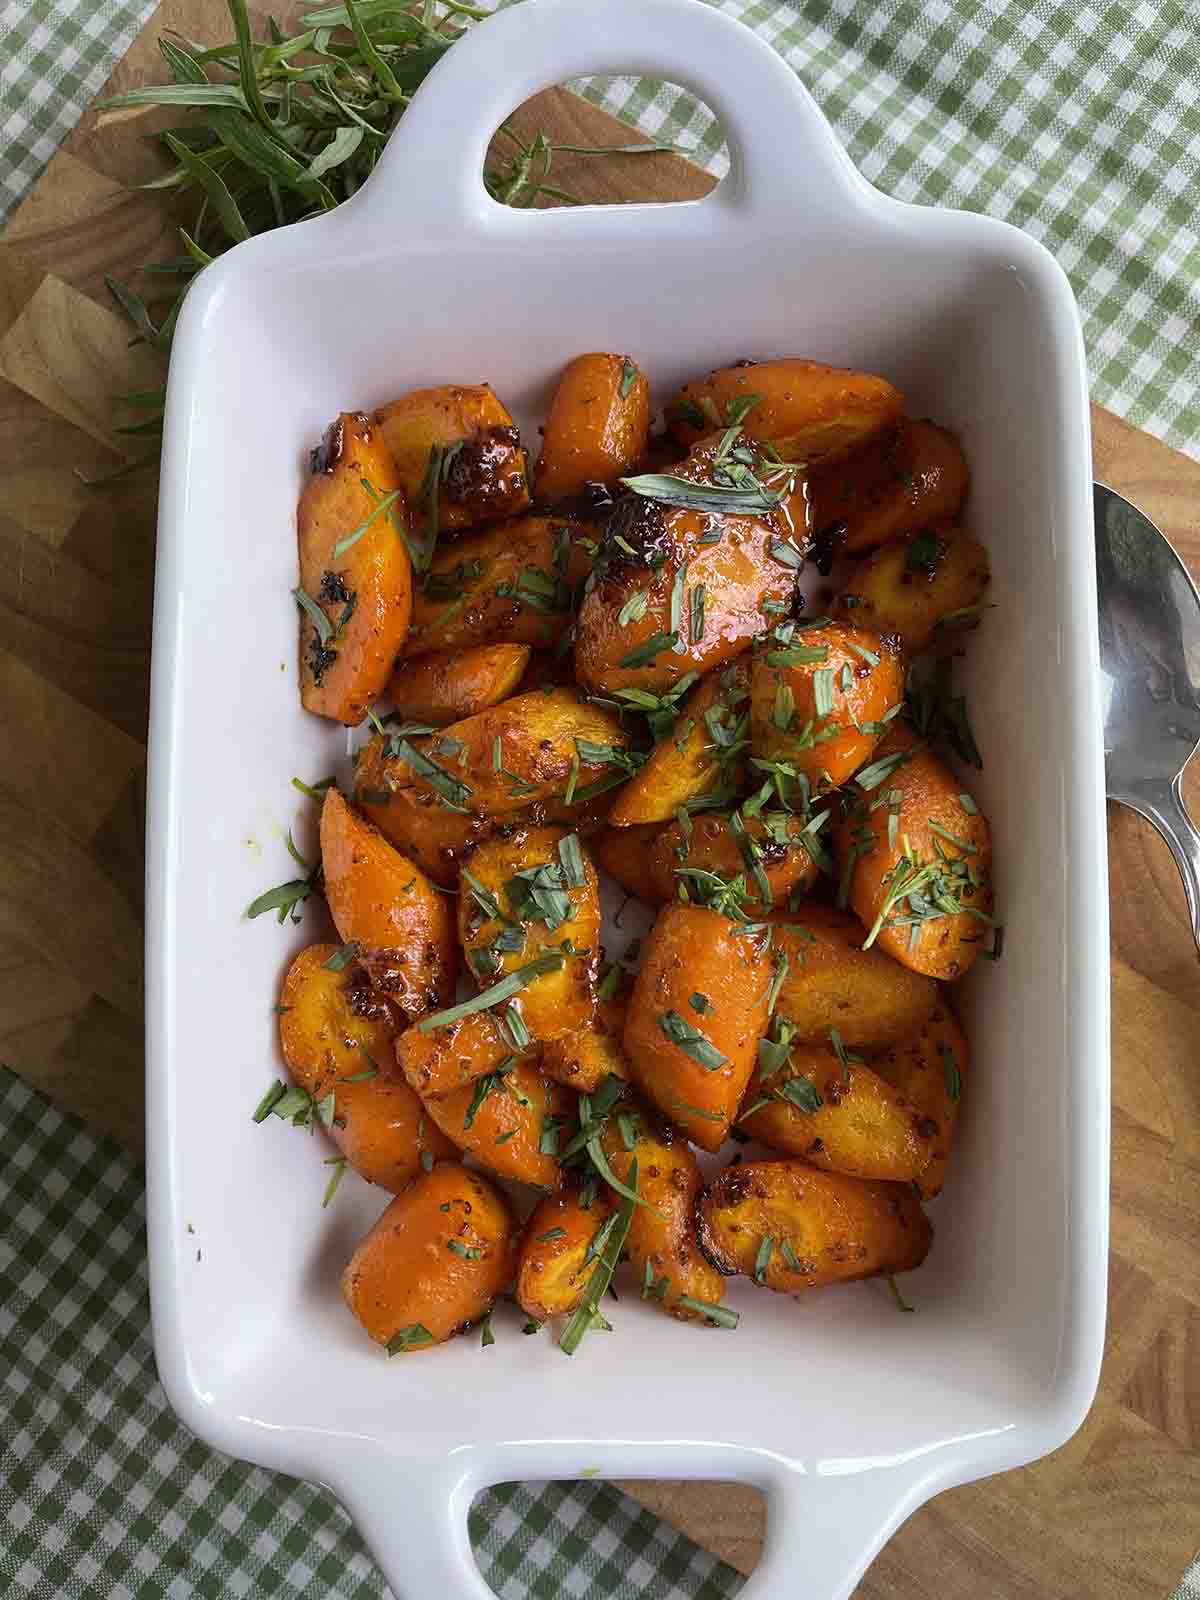 honey roasted carrots in a dish with a serving spoon.